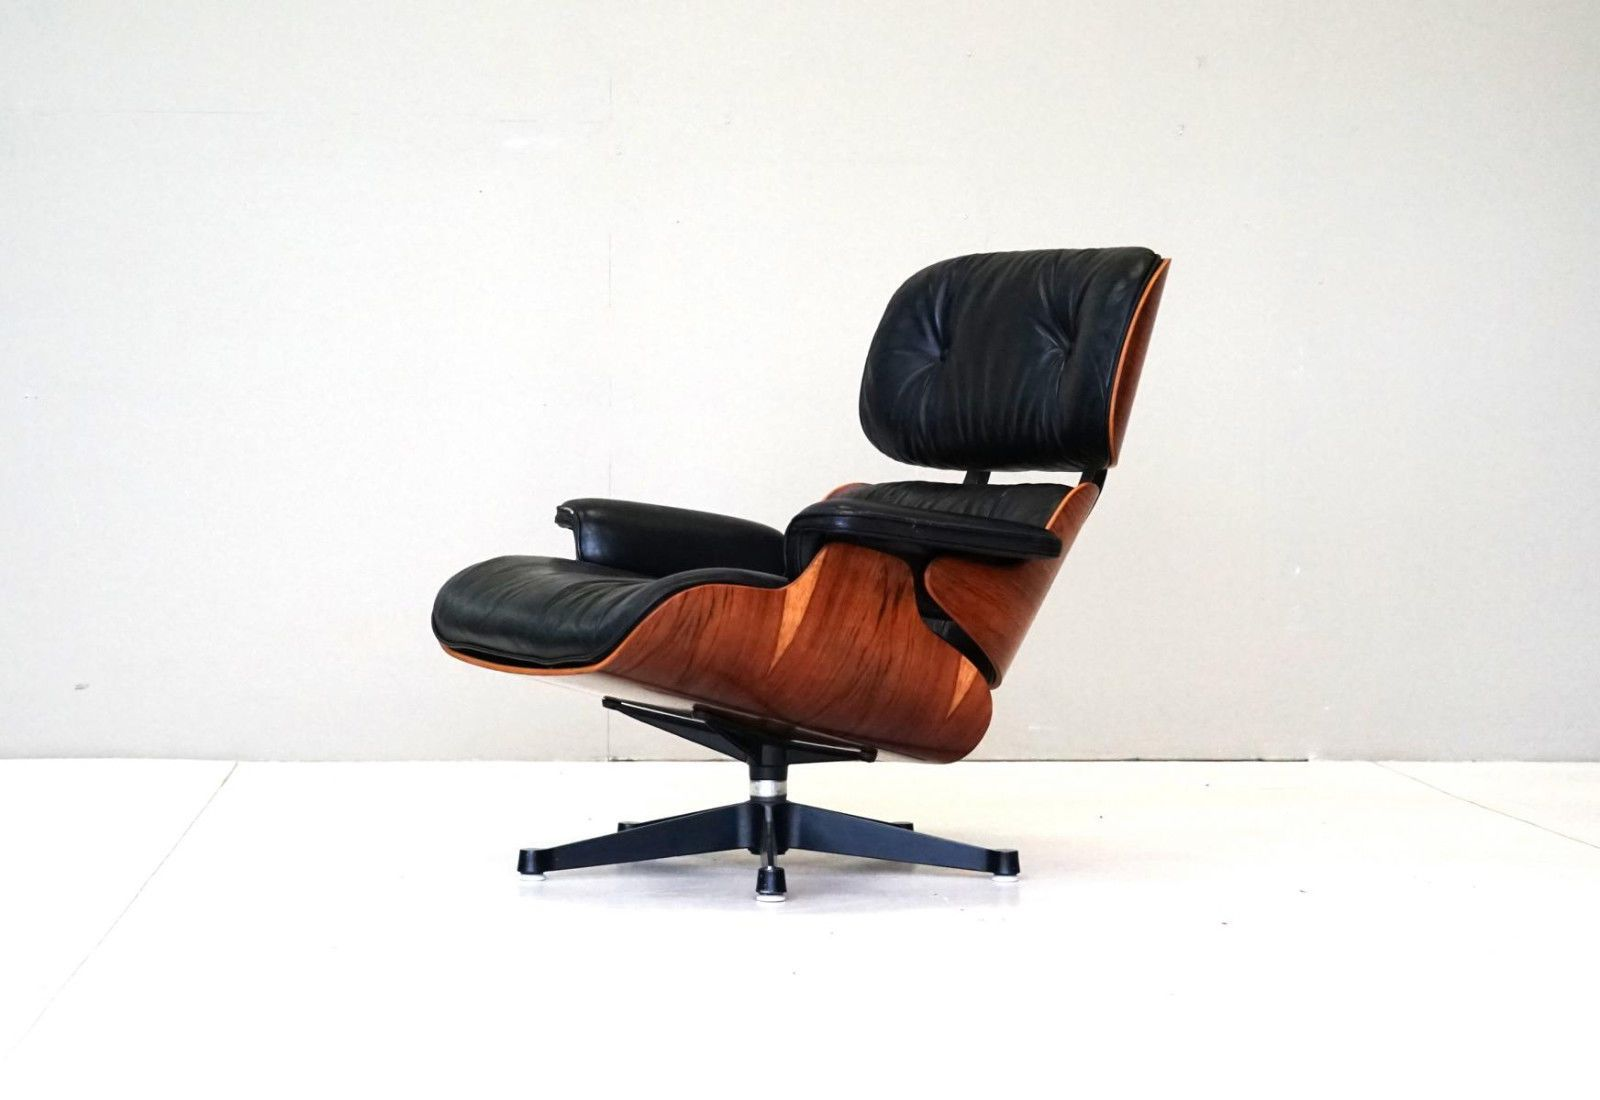 Eames Chair Sessel Charles Eames Lounge Chair Sessel Herman Miller Leder Palisander